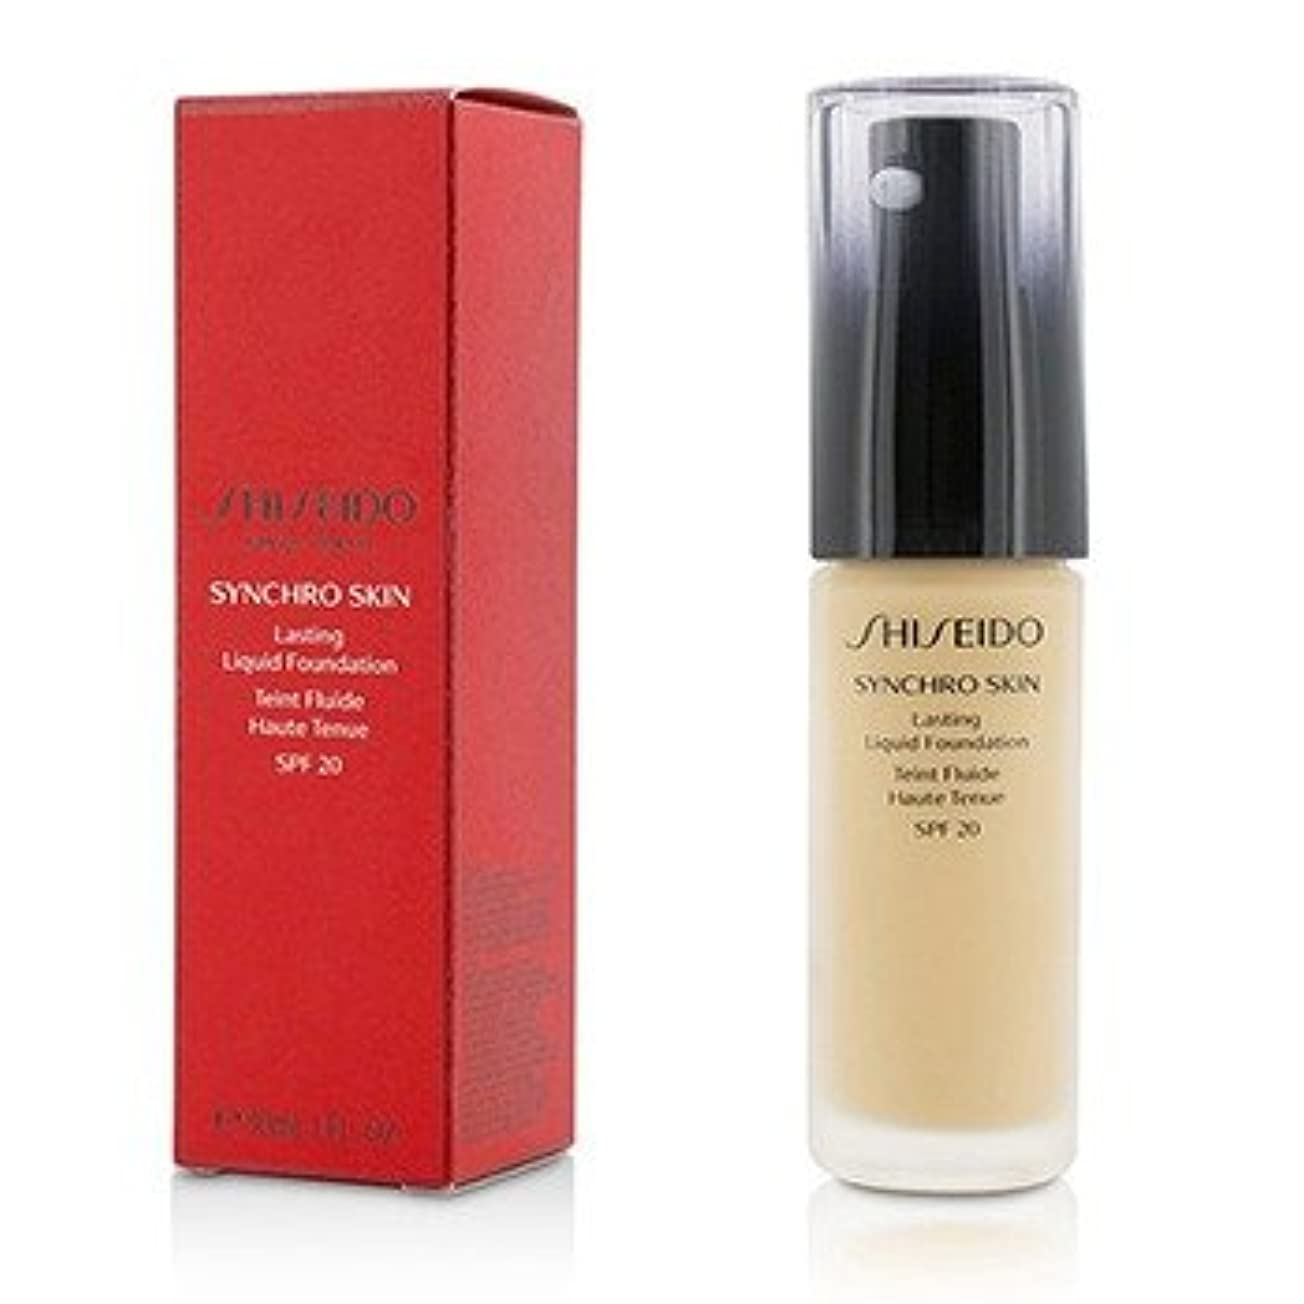 配る株式生物学[Shiseido] Synchro Skin Lasting Liquid Foundation SPF 20 - Neutral 3 30ml/1oz